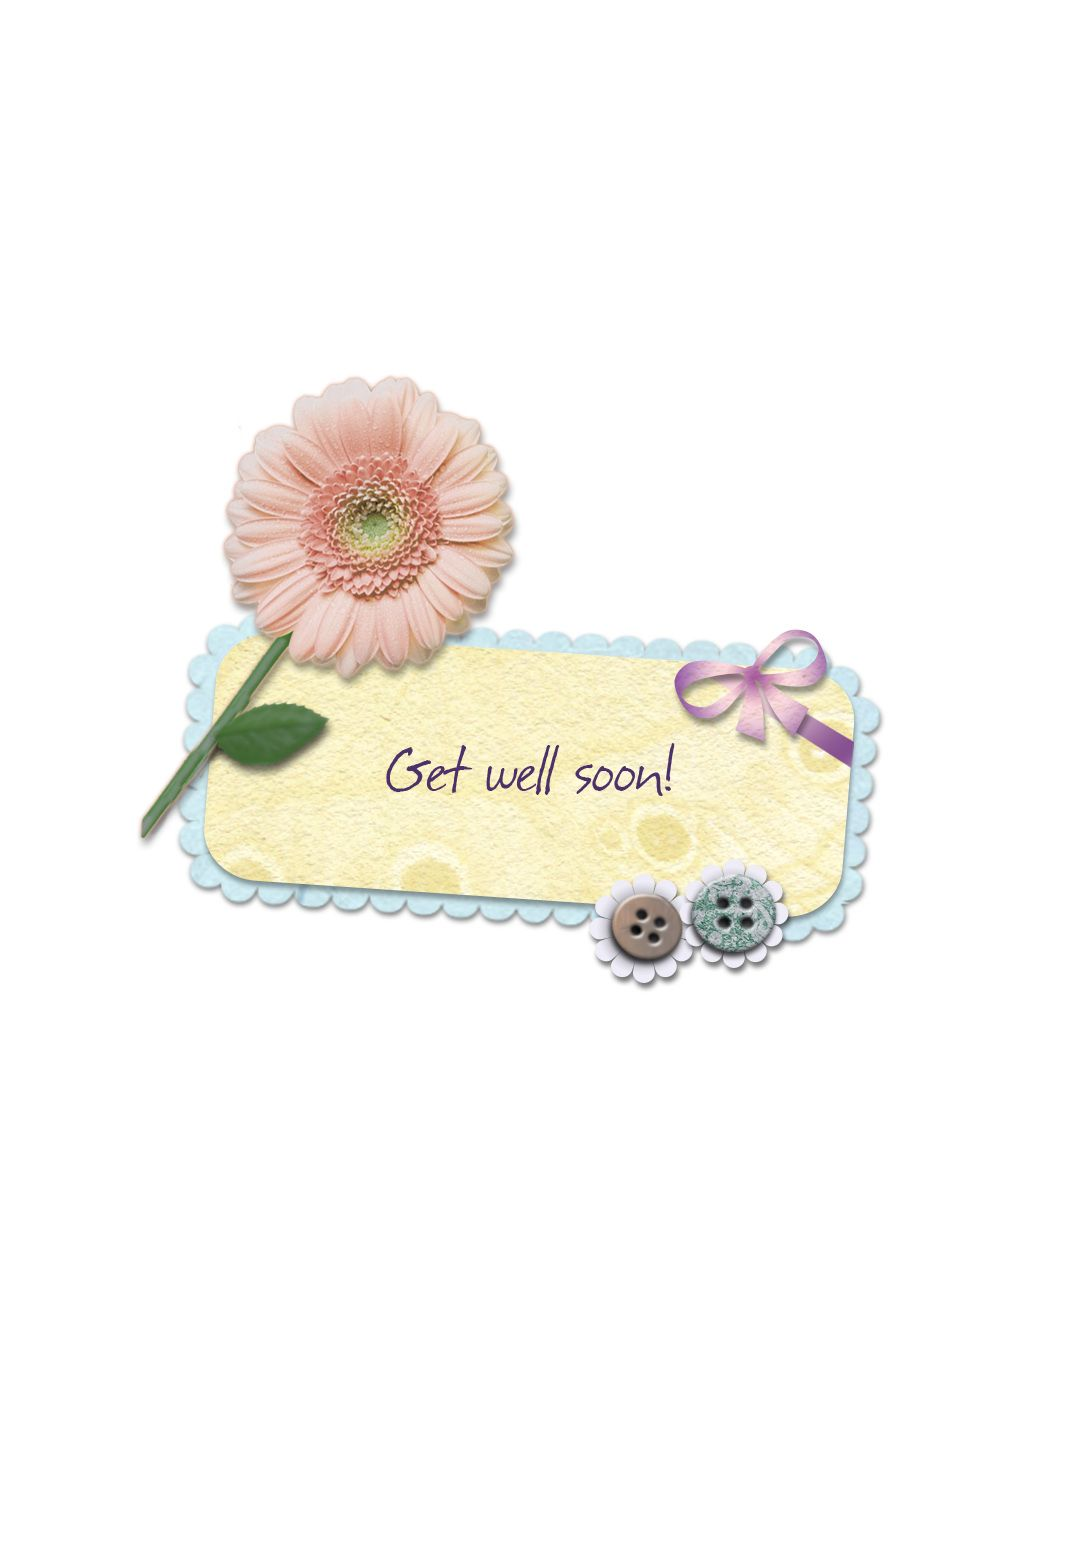 Appealing Get Well Free Printable Get Well Soon Greeting Card Get Well Free Printable Get Well Soon Greeting Card Get Well Free Get Well Cards Spanish Free Get Well Cards Surgery